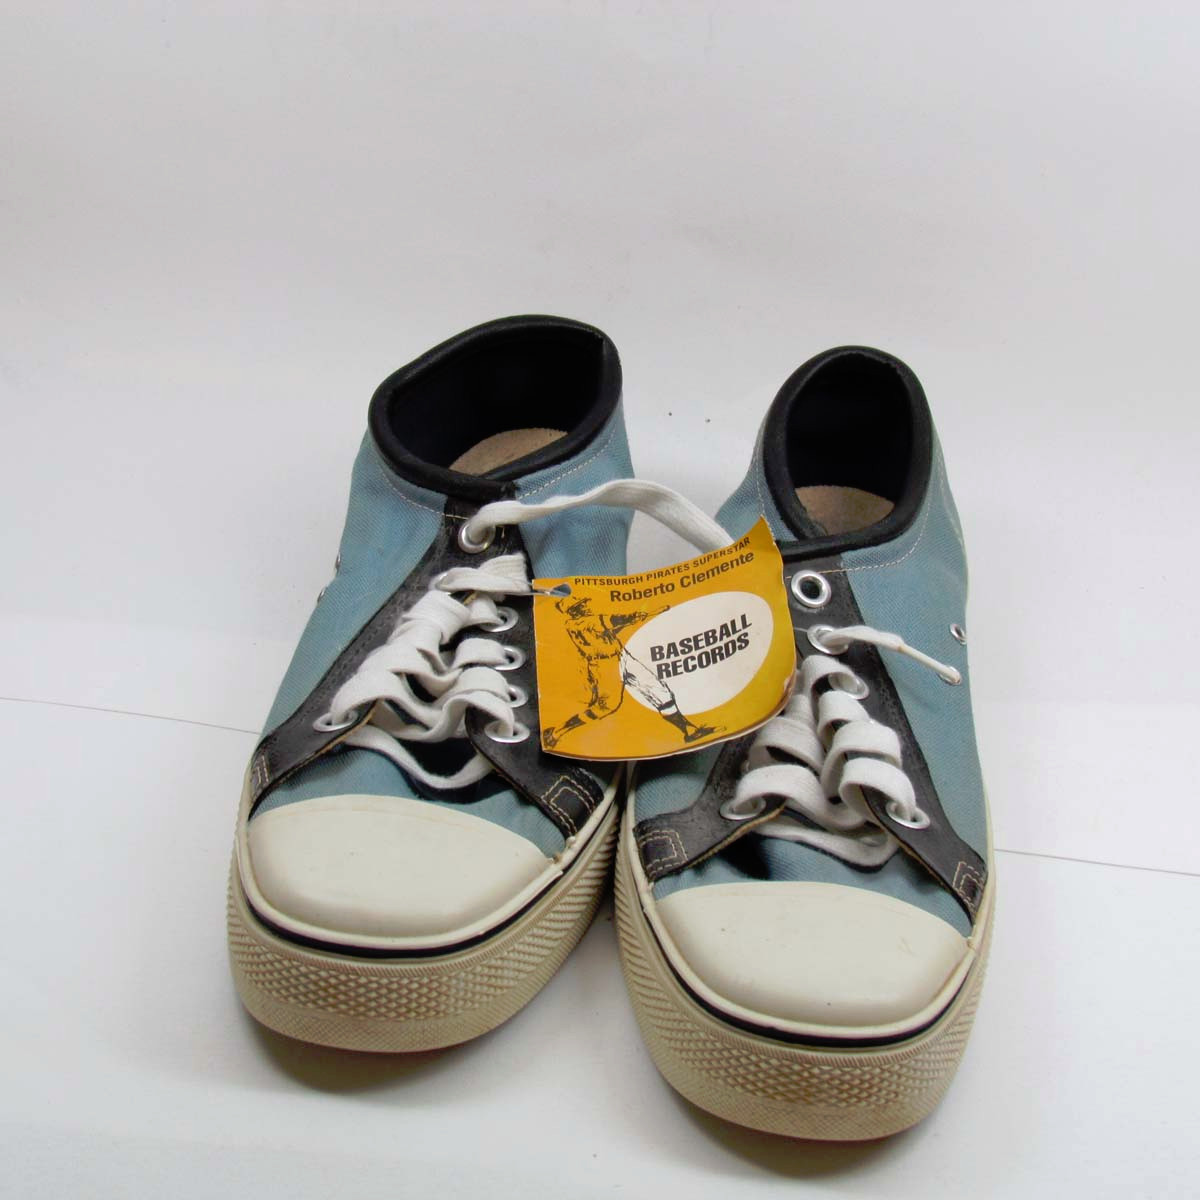 f3994653eb6f6 roberto clemento sig sneakers vintage vintage roberto clemente sneakers ...